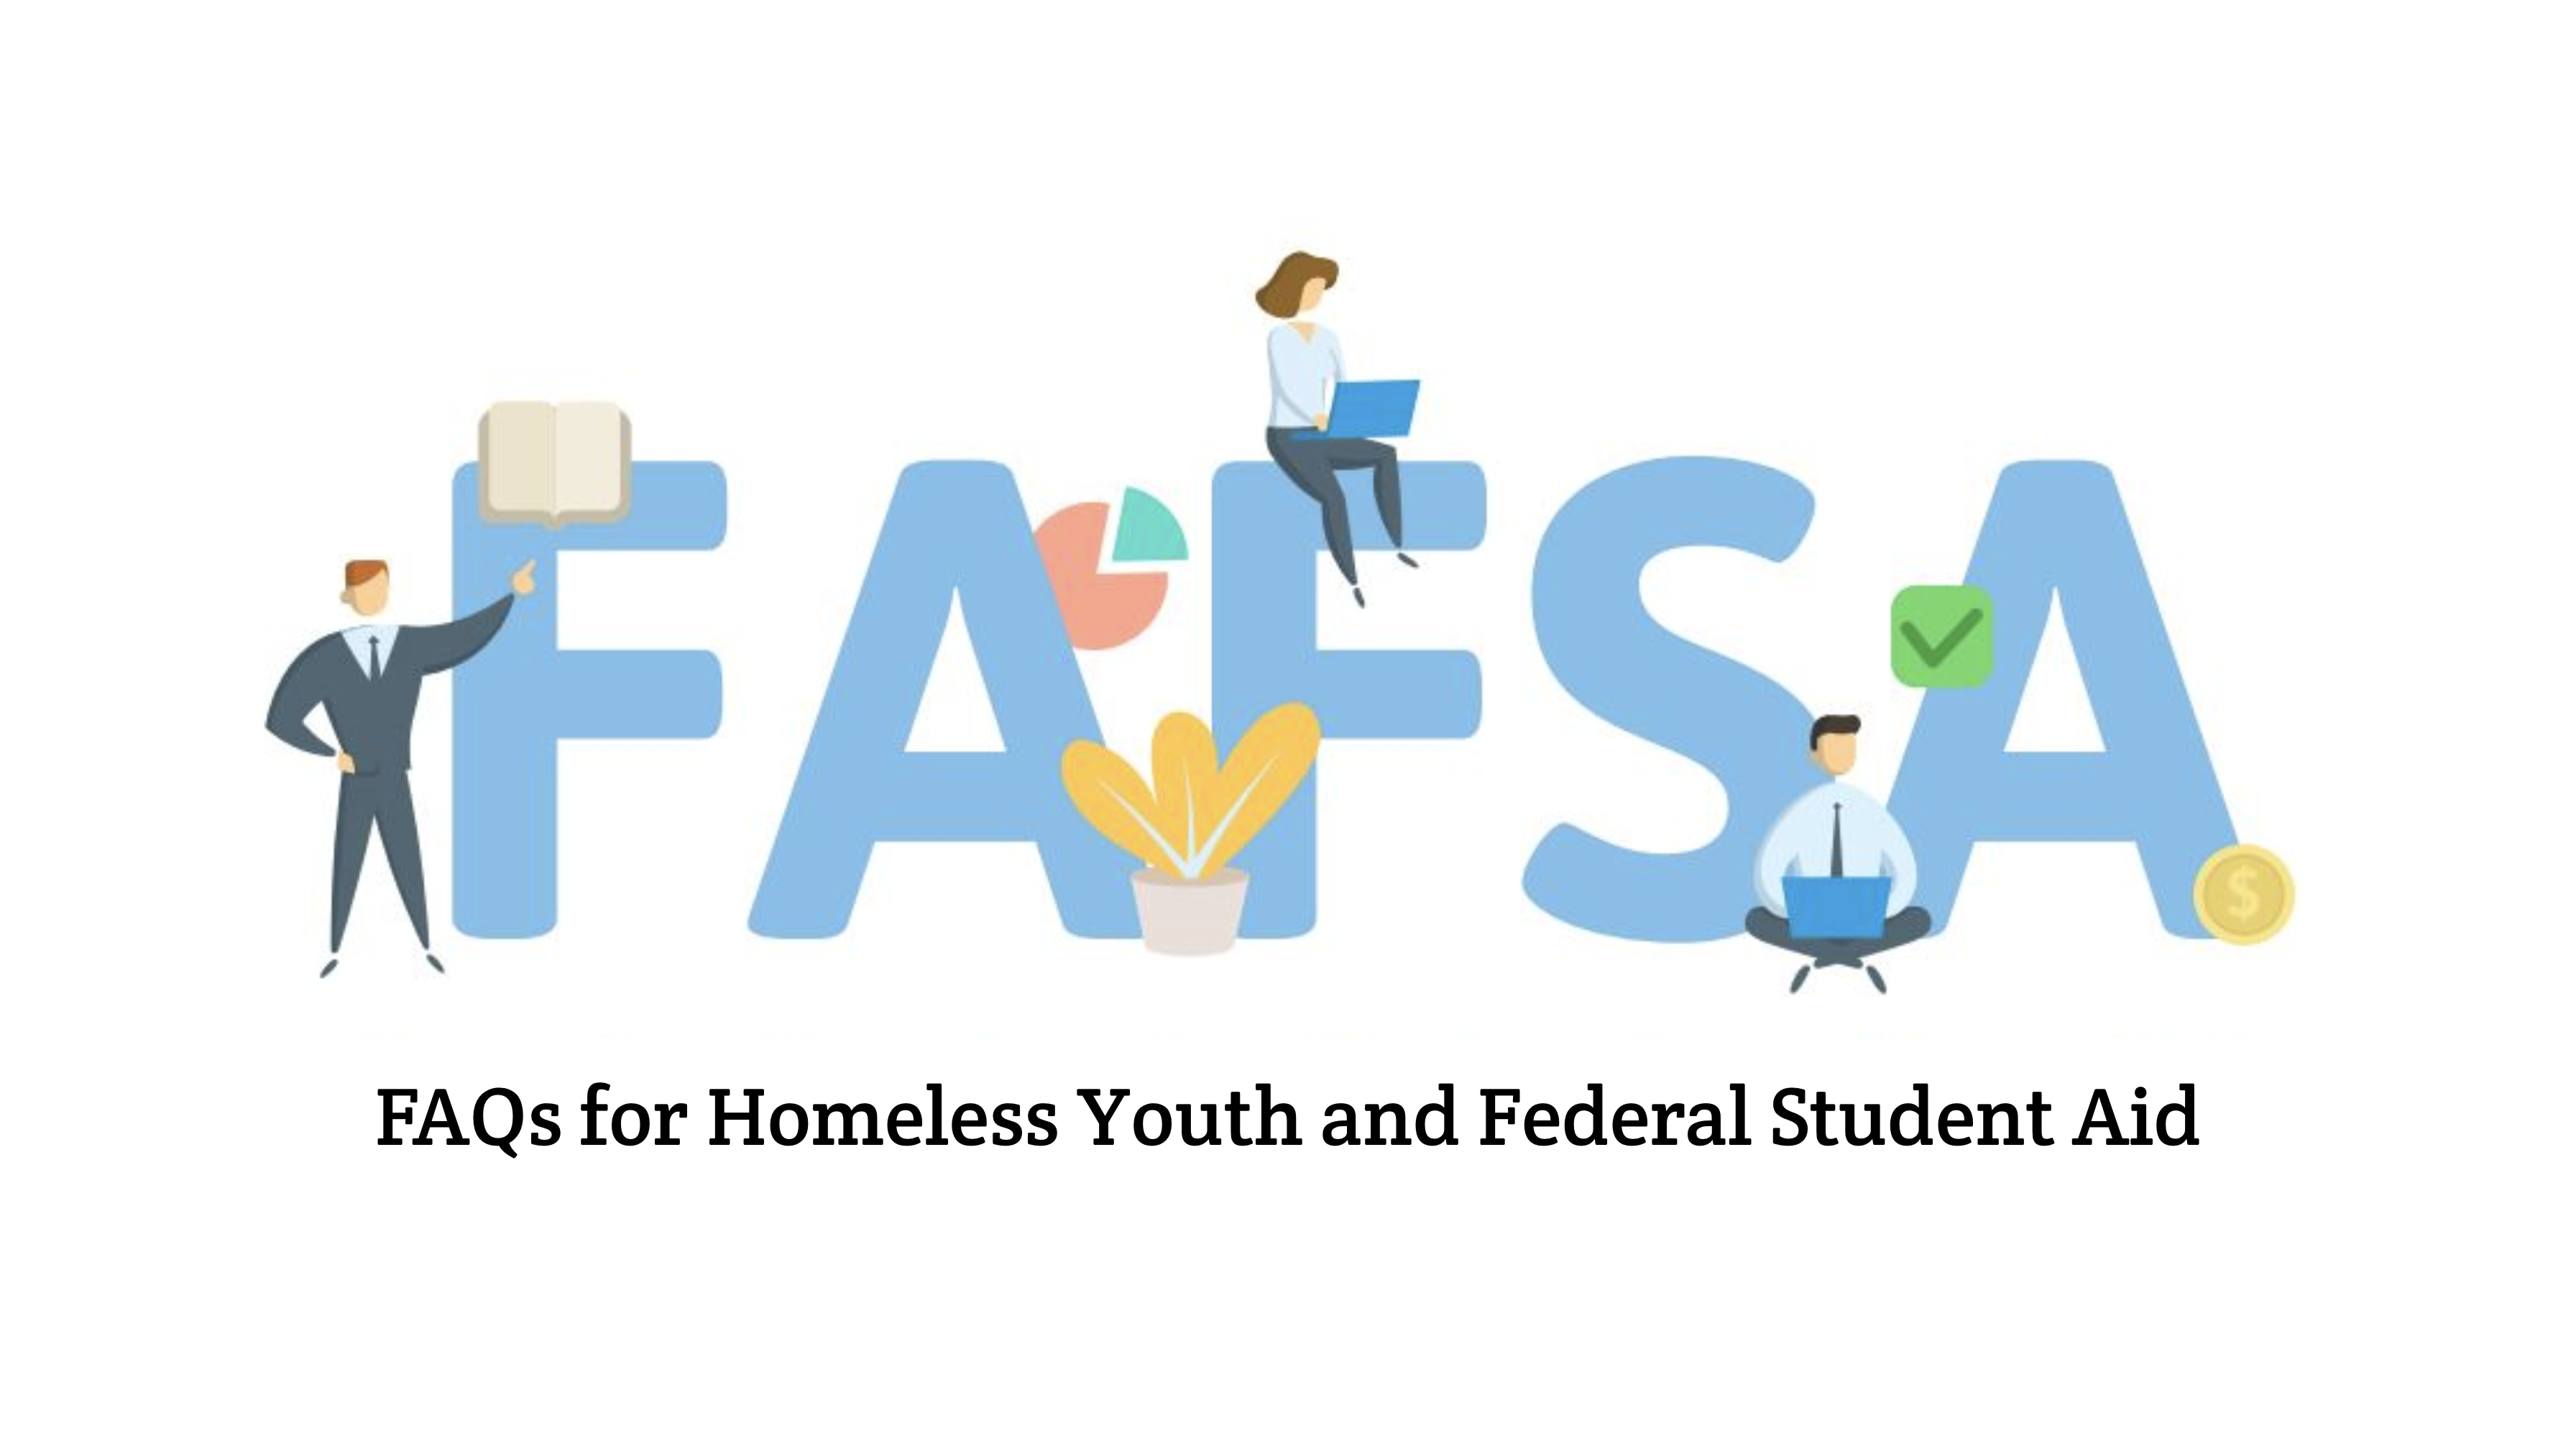 Student Aid Information for Homeless Youth